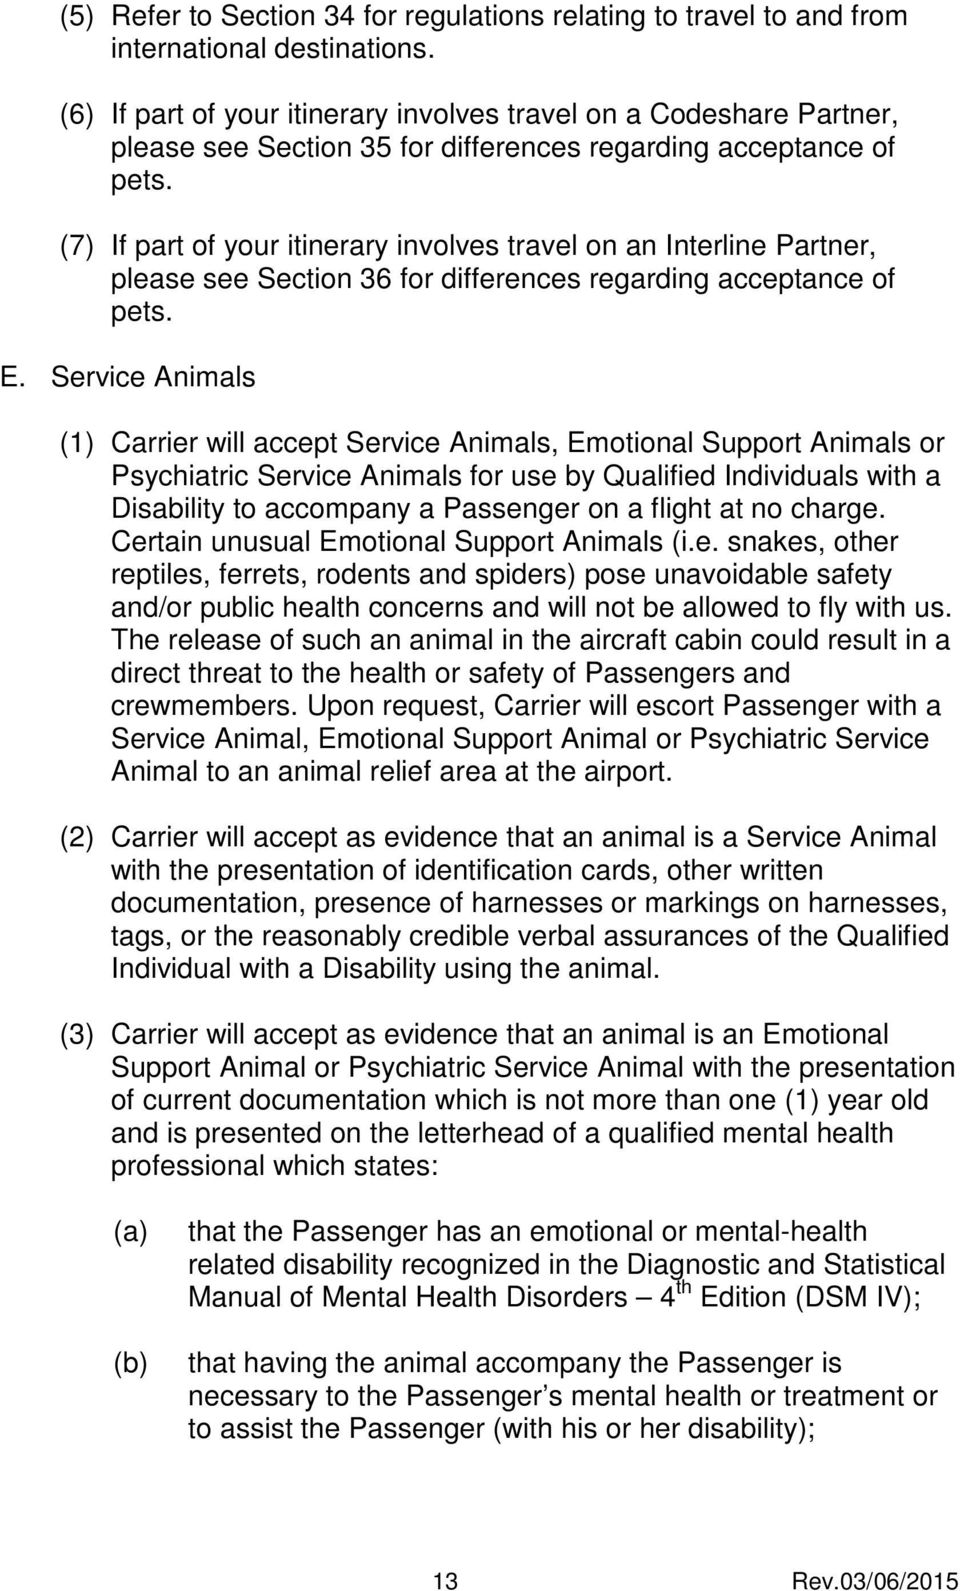 (7) If part of your itinerary involves travel on an Interline Partner, please see Section 36 for differences regarding acceptance of pets. E.